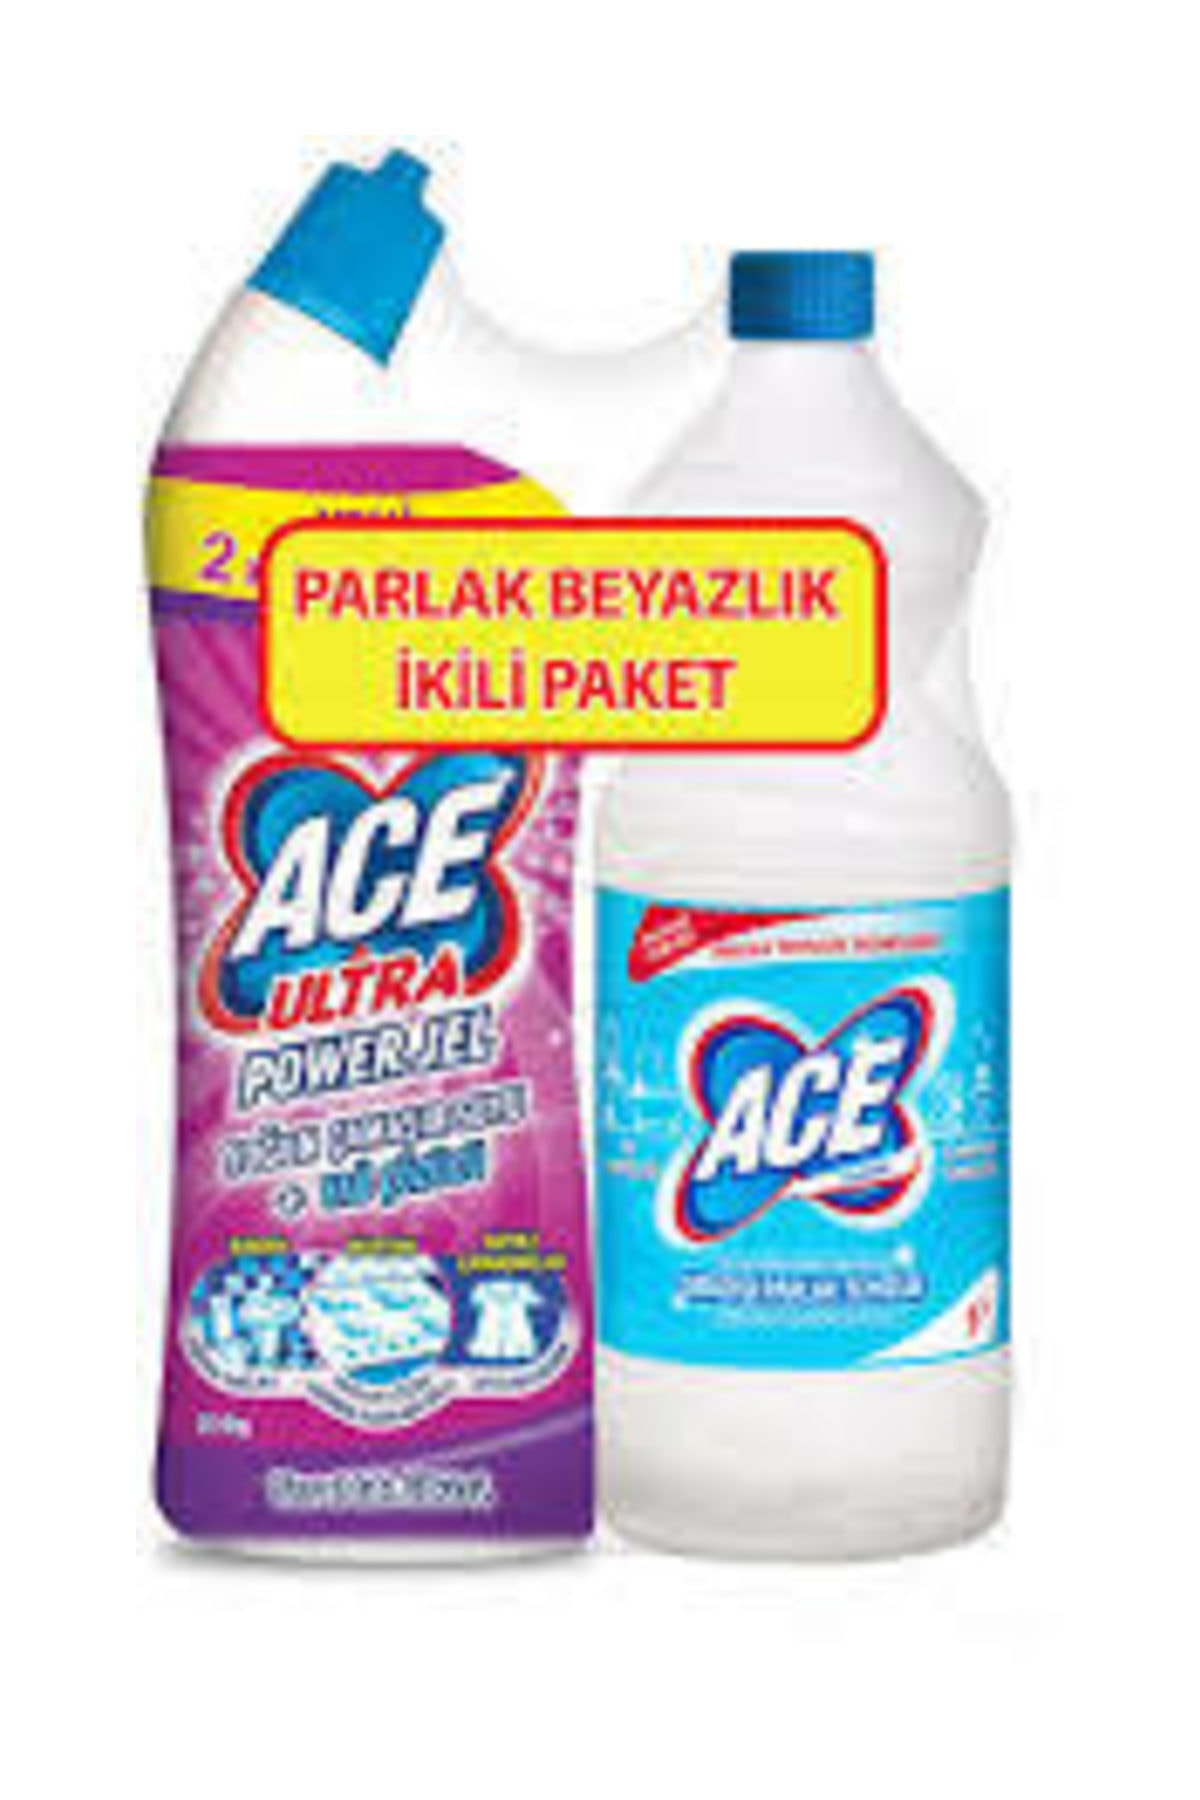 ACE Ultra Power Jel 750 ml ve Klasik 1 lt 1